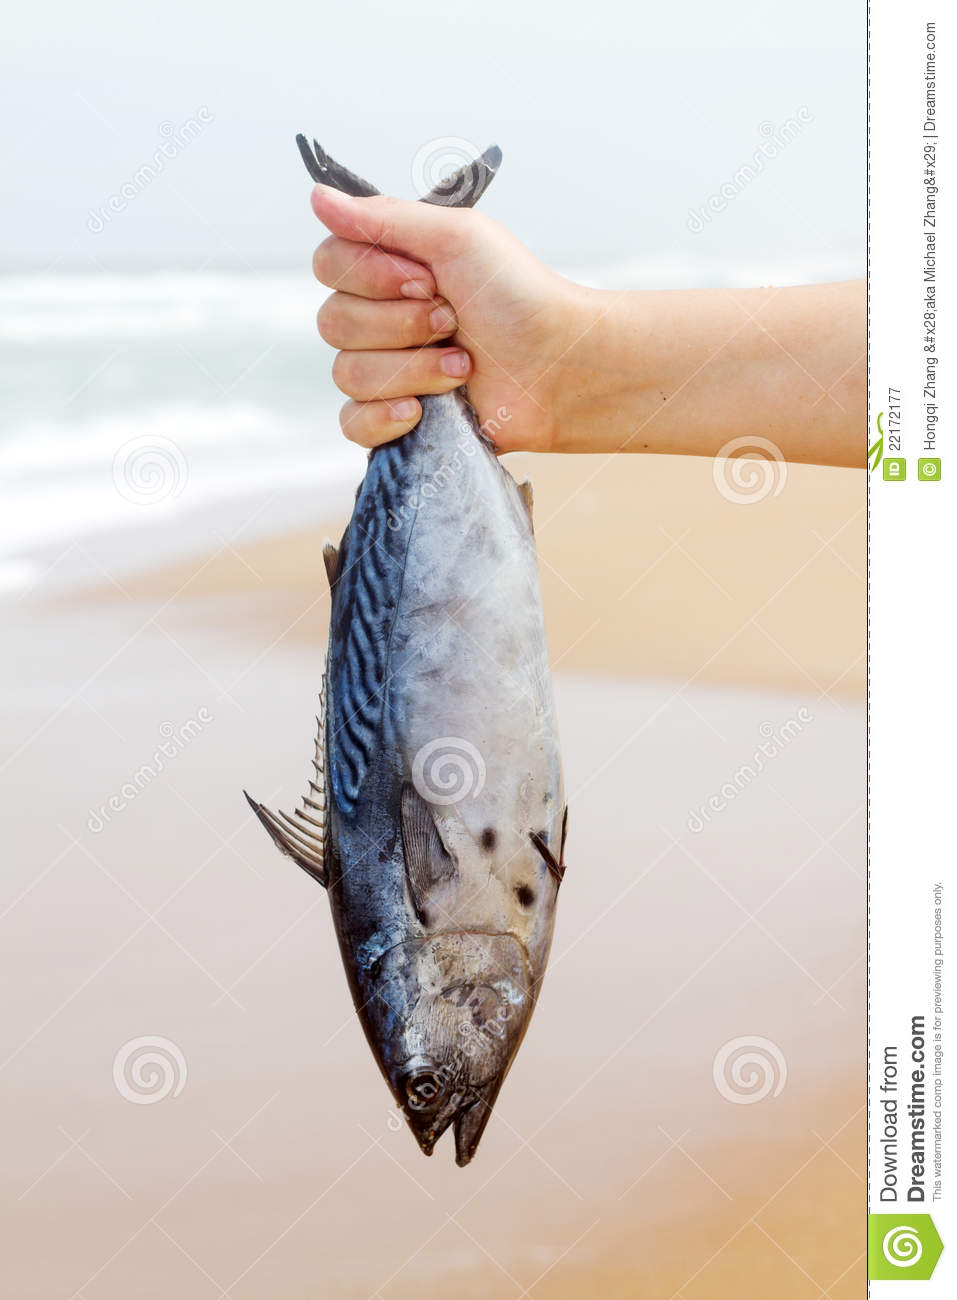 Catch fish royalty free stock photography image 22172177 for People catching fish